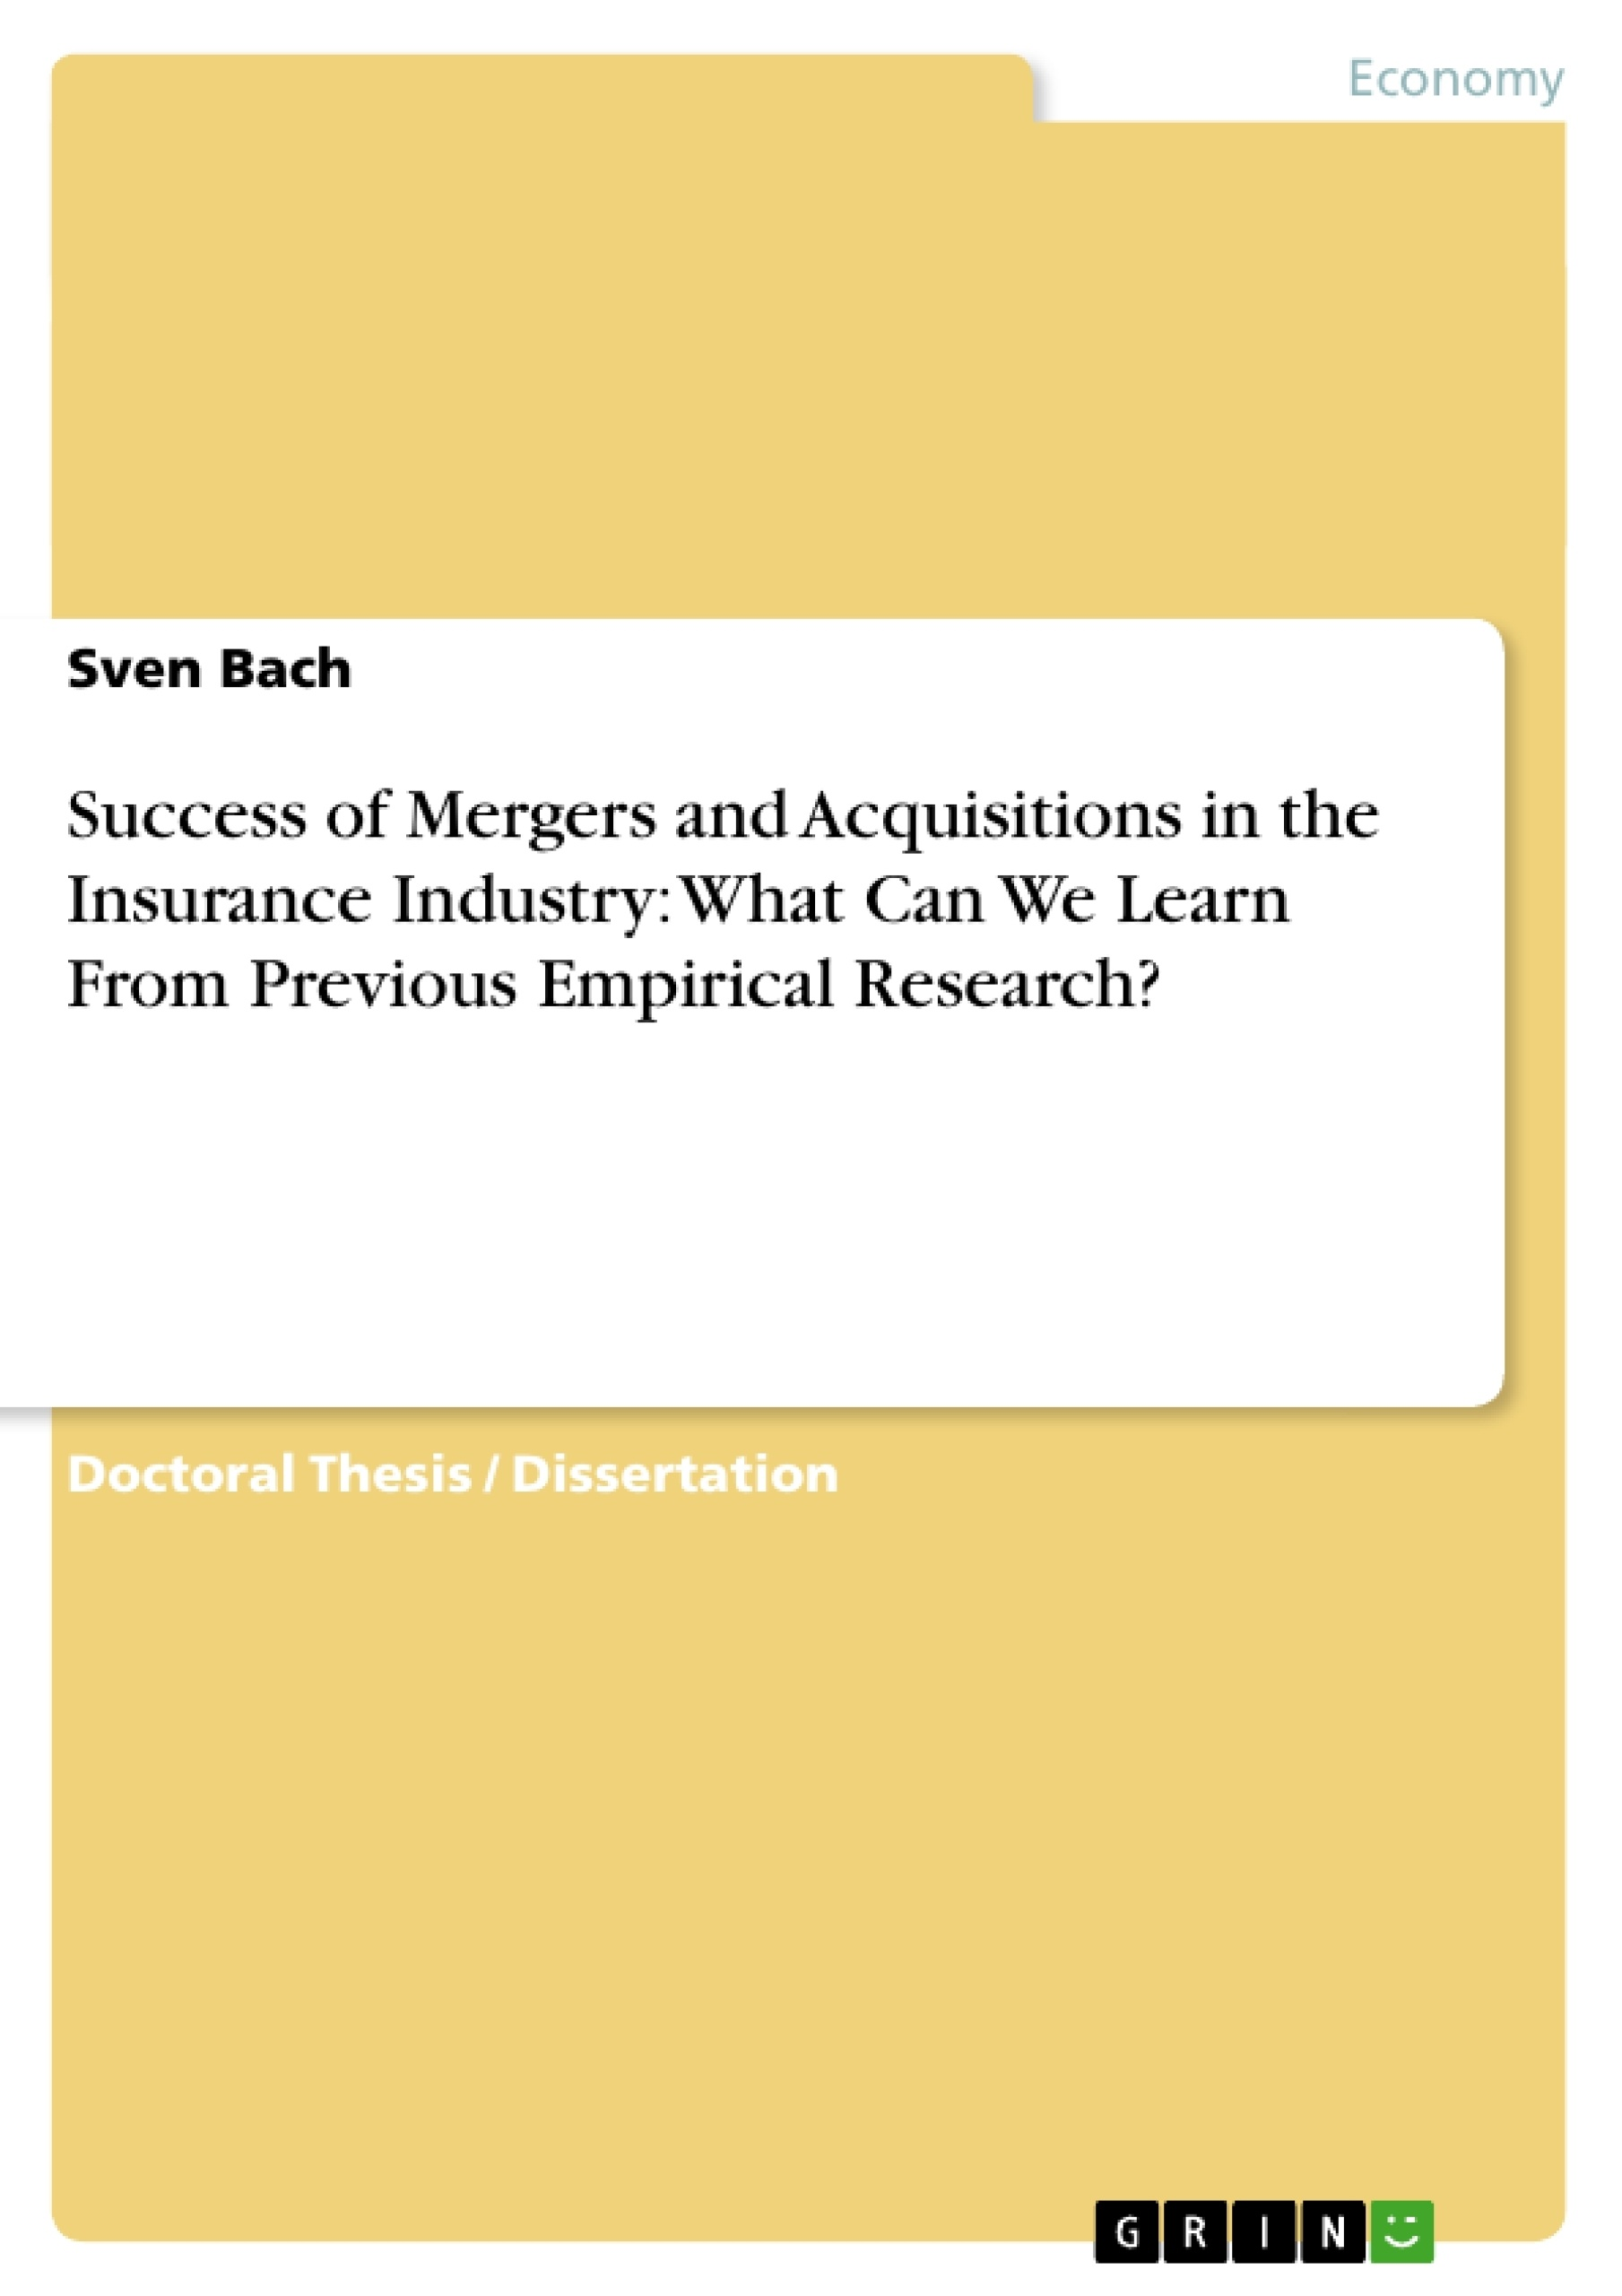 Title: Success of Mergers and Acquisitions in the Insurance Industry: What Can We Learn From Previous Empirical Research?